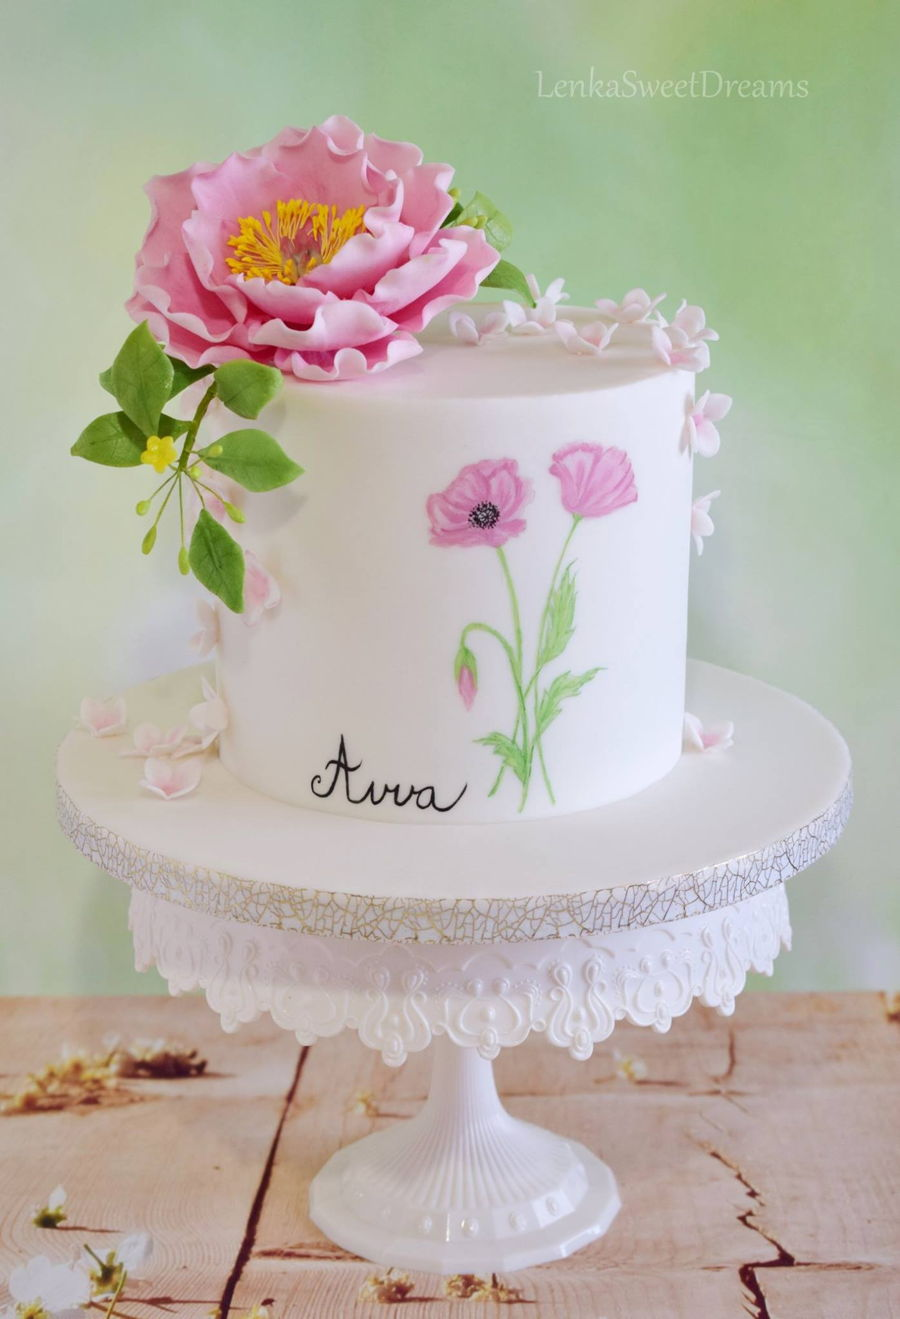 Birthday Cake With Sugar Flowers CakeCentralcom